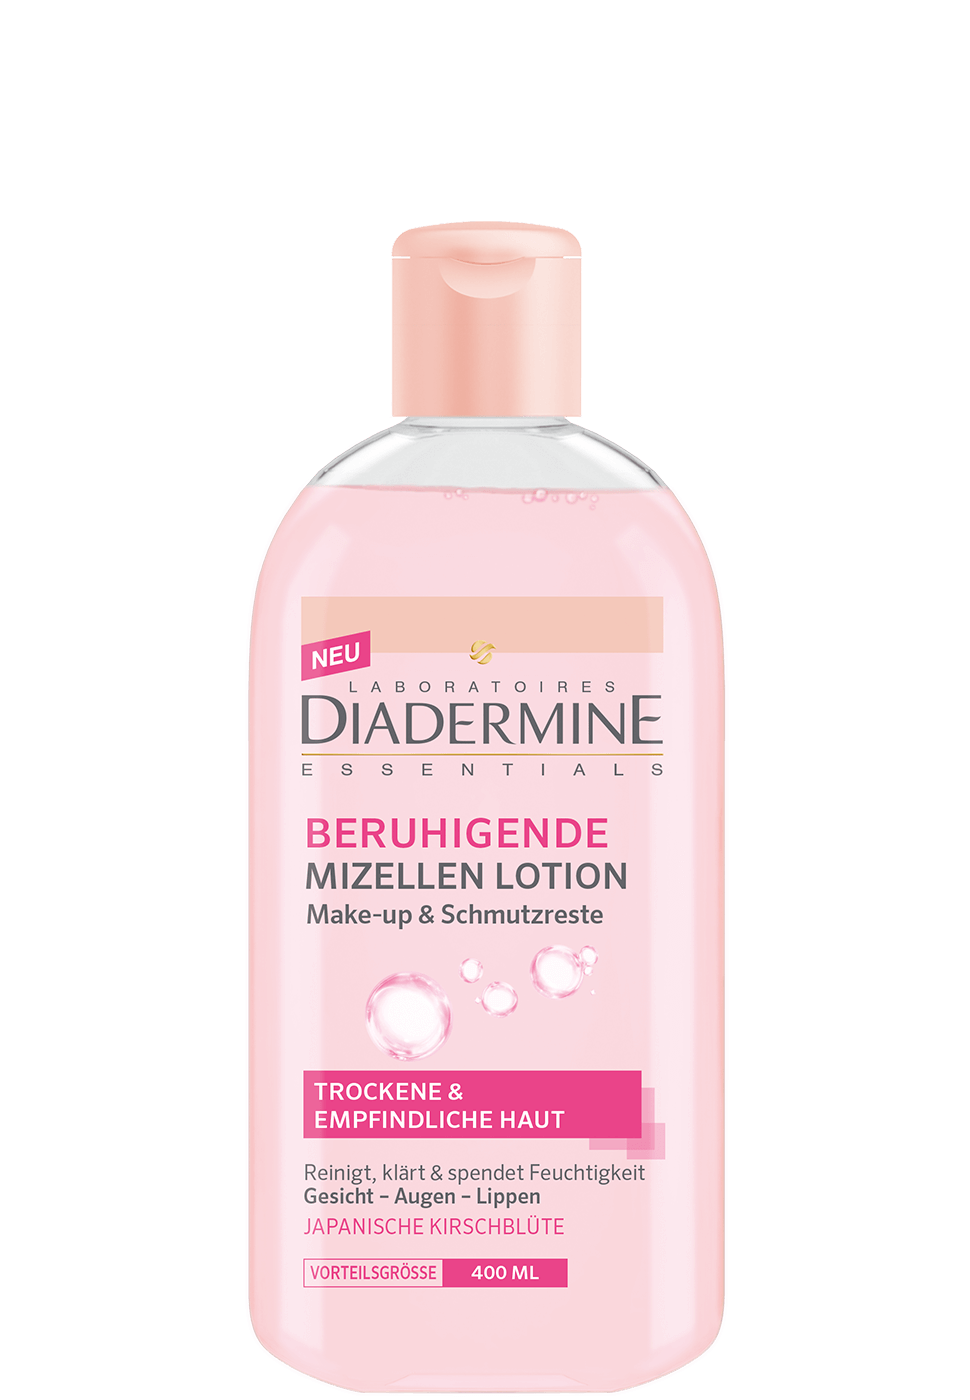 diadermine_at_essentials_beruhigende_mizellen_lotion_970x1400